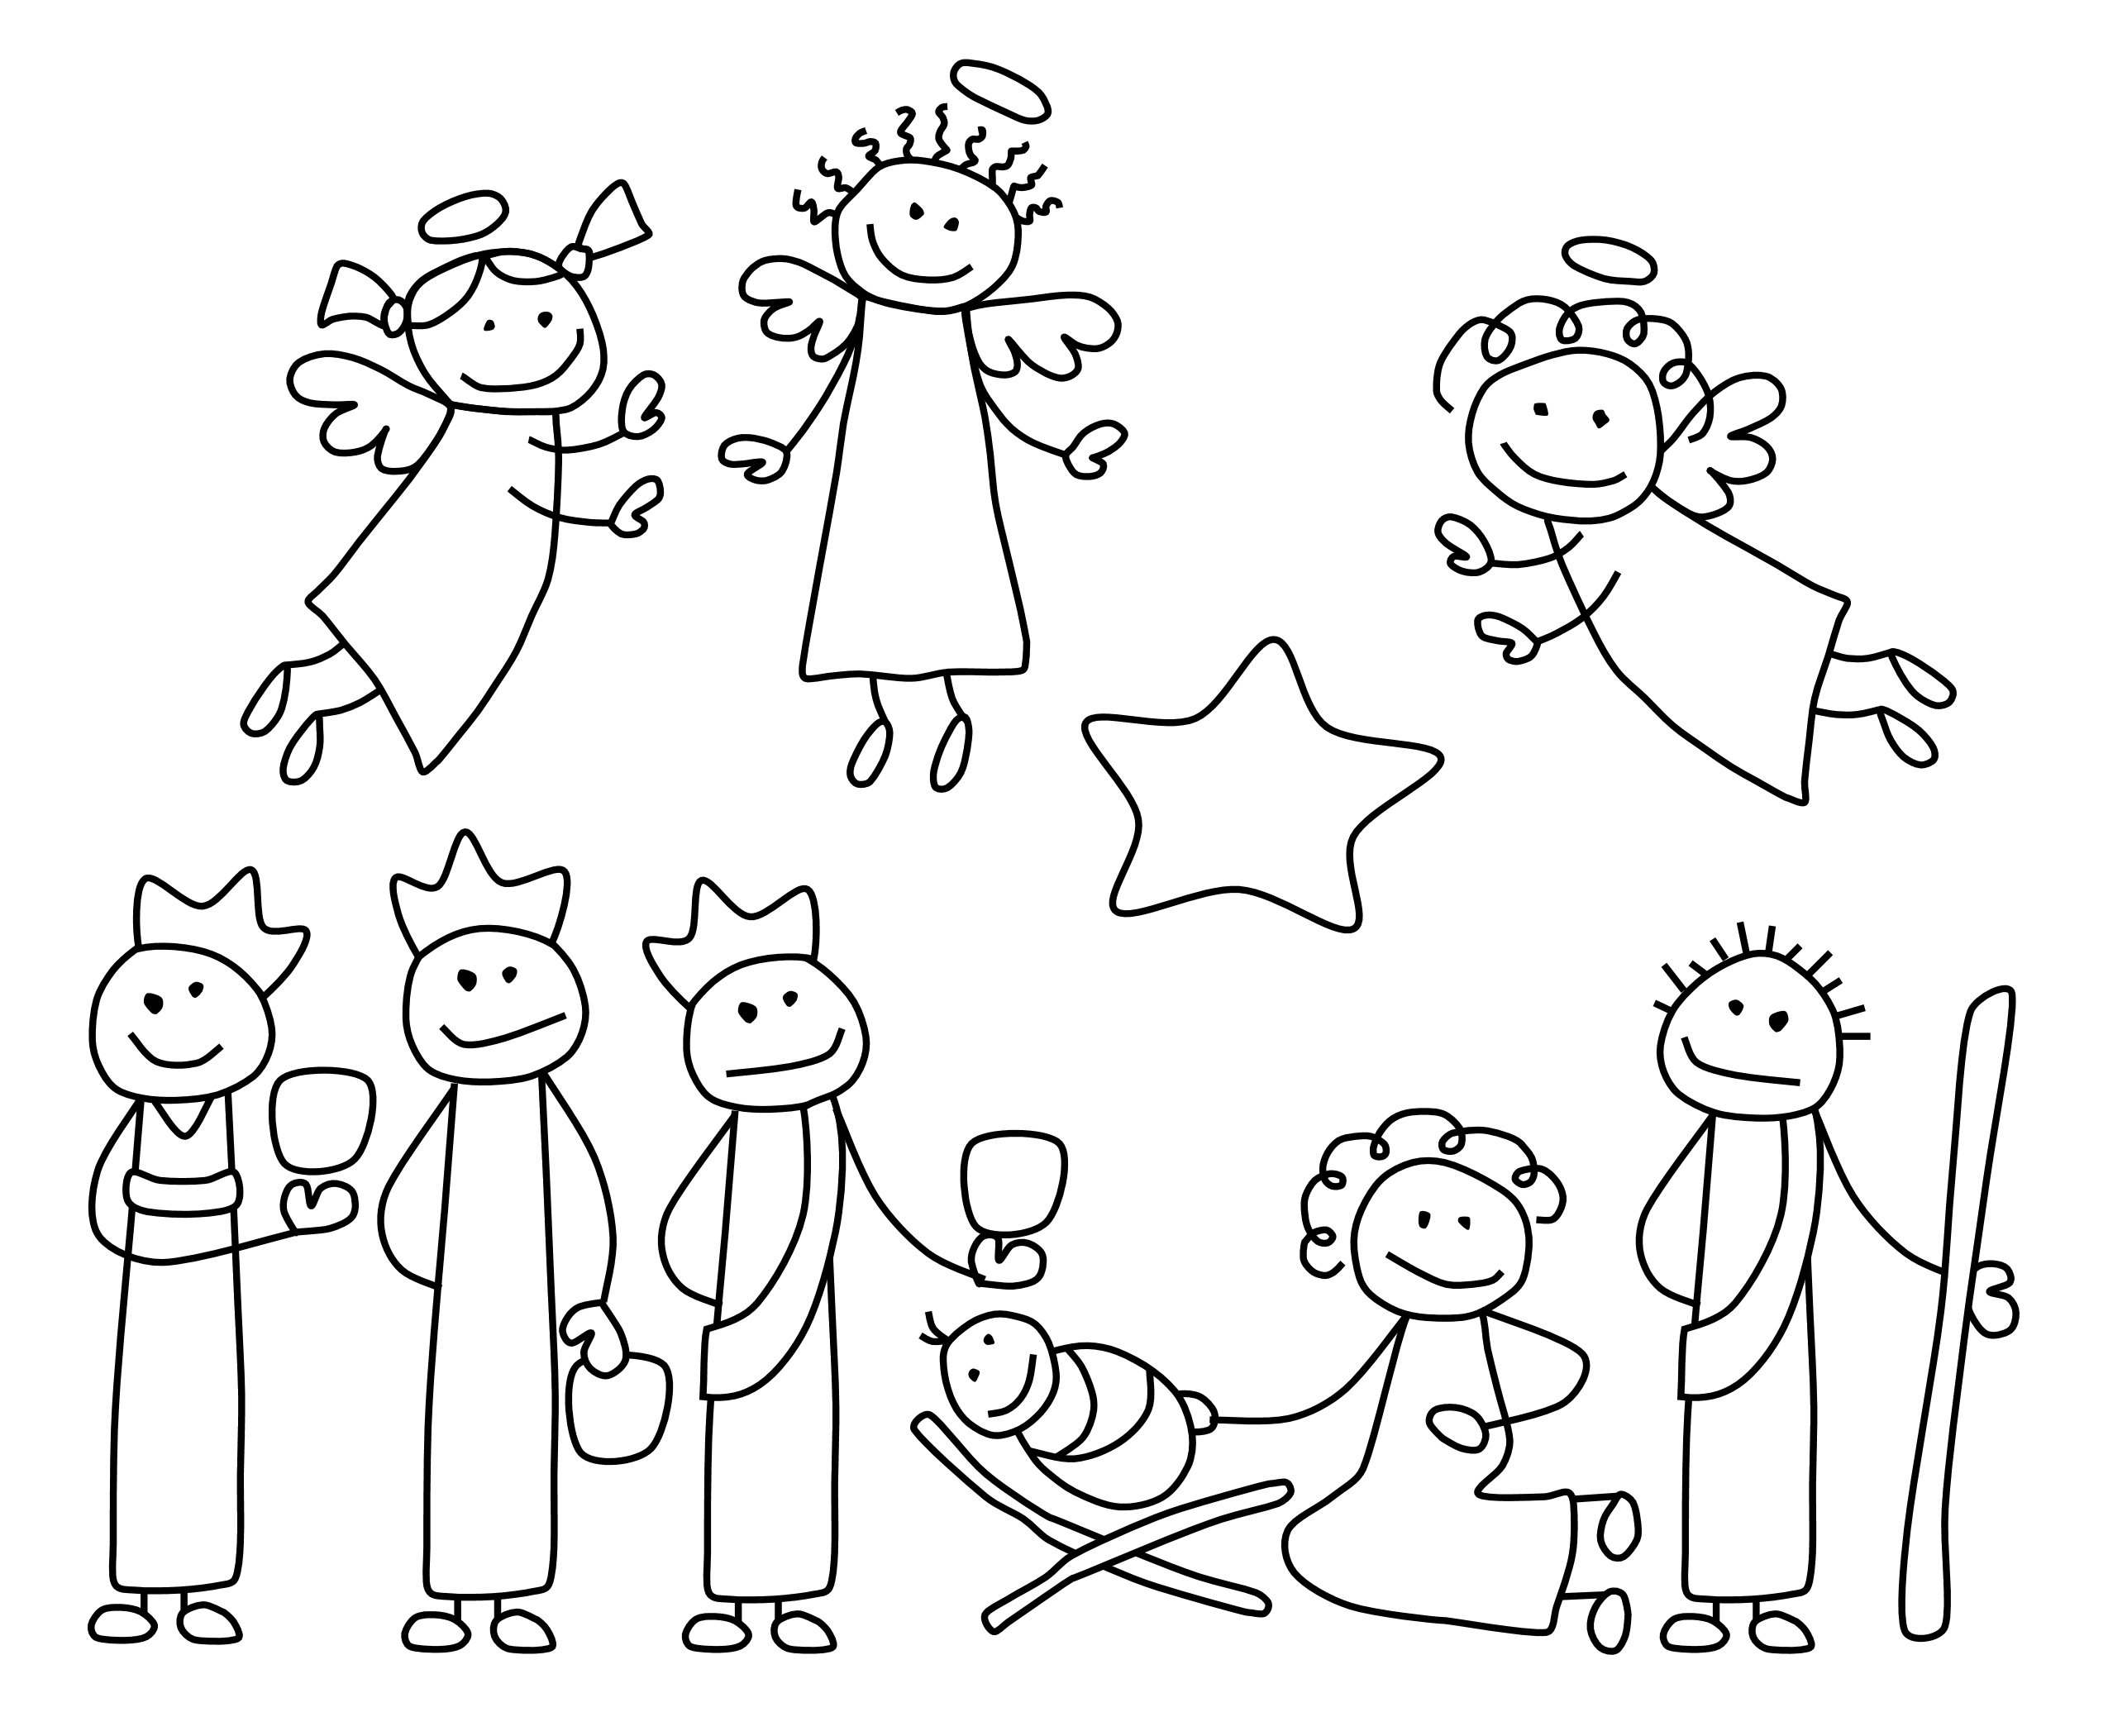 1000+ images about Stick figures on Pinterest.